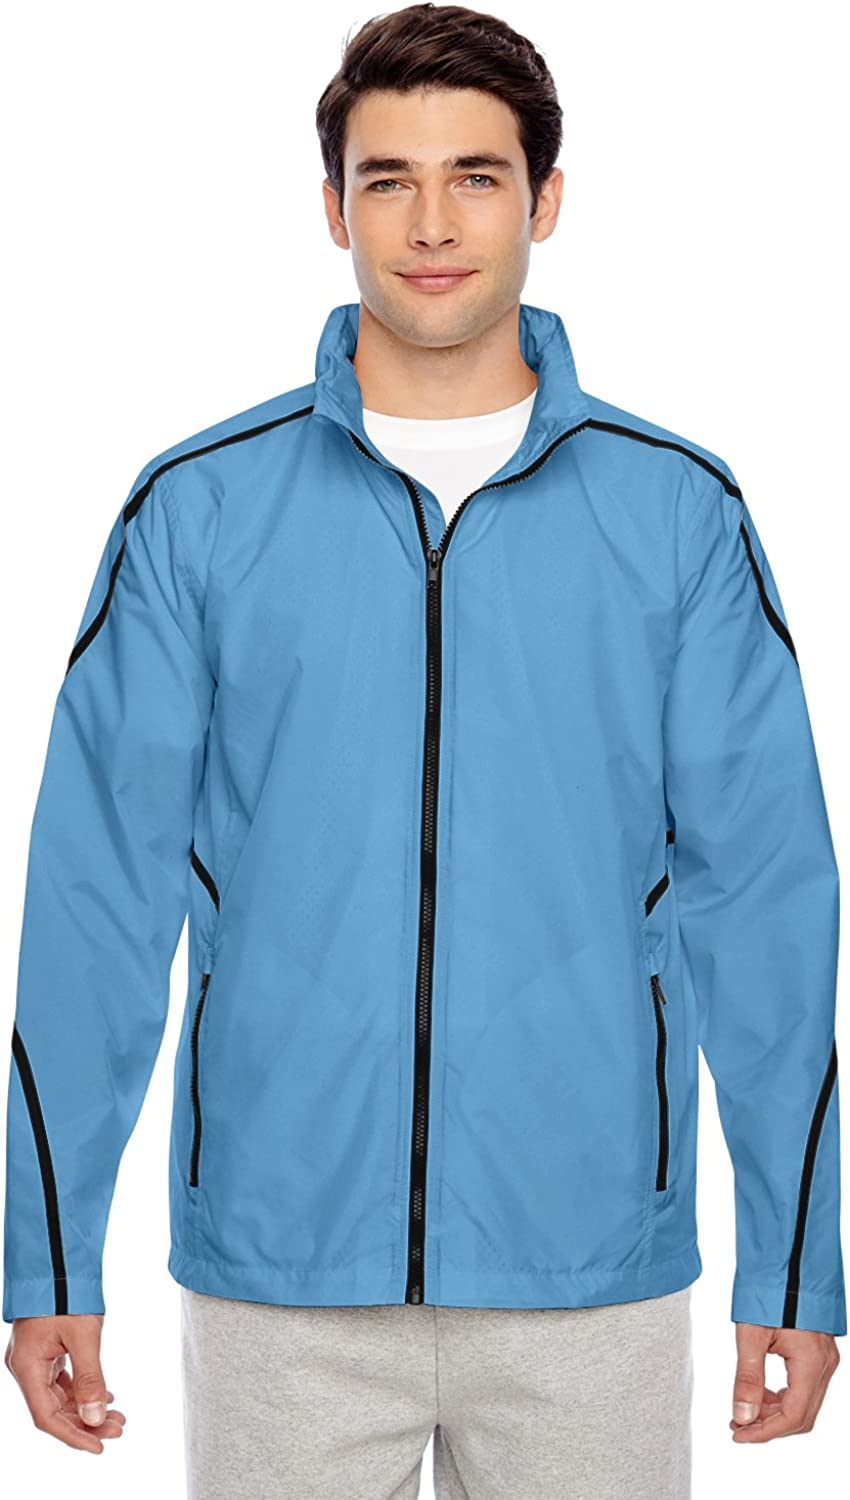 Team 365 Conquest Jacket with Mesh Lining